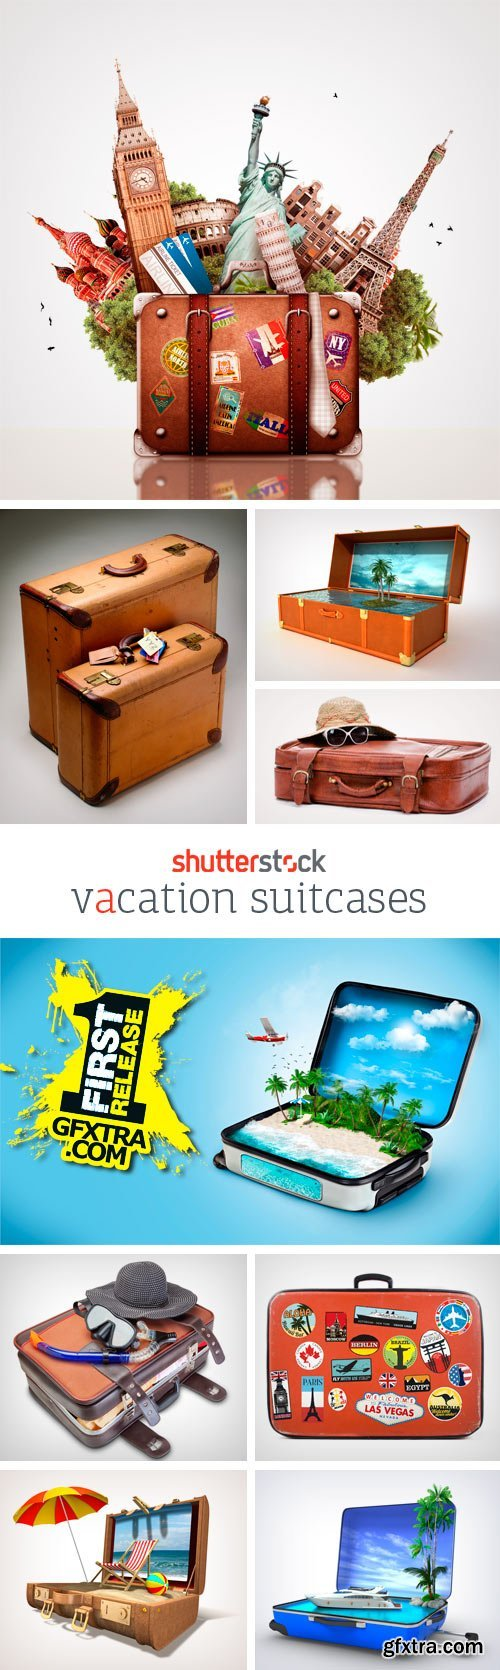 Amazing SS - Vacation Suitcases, 25xJPGs